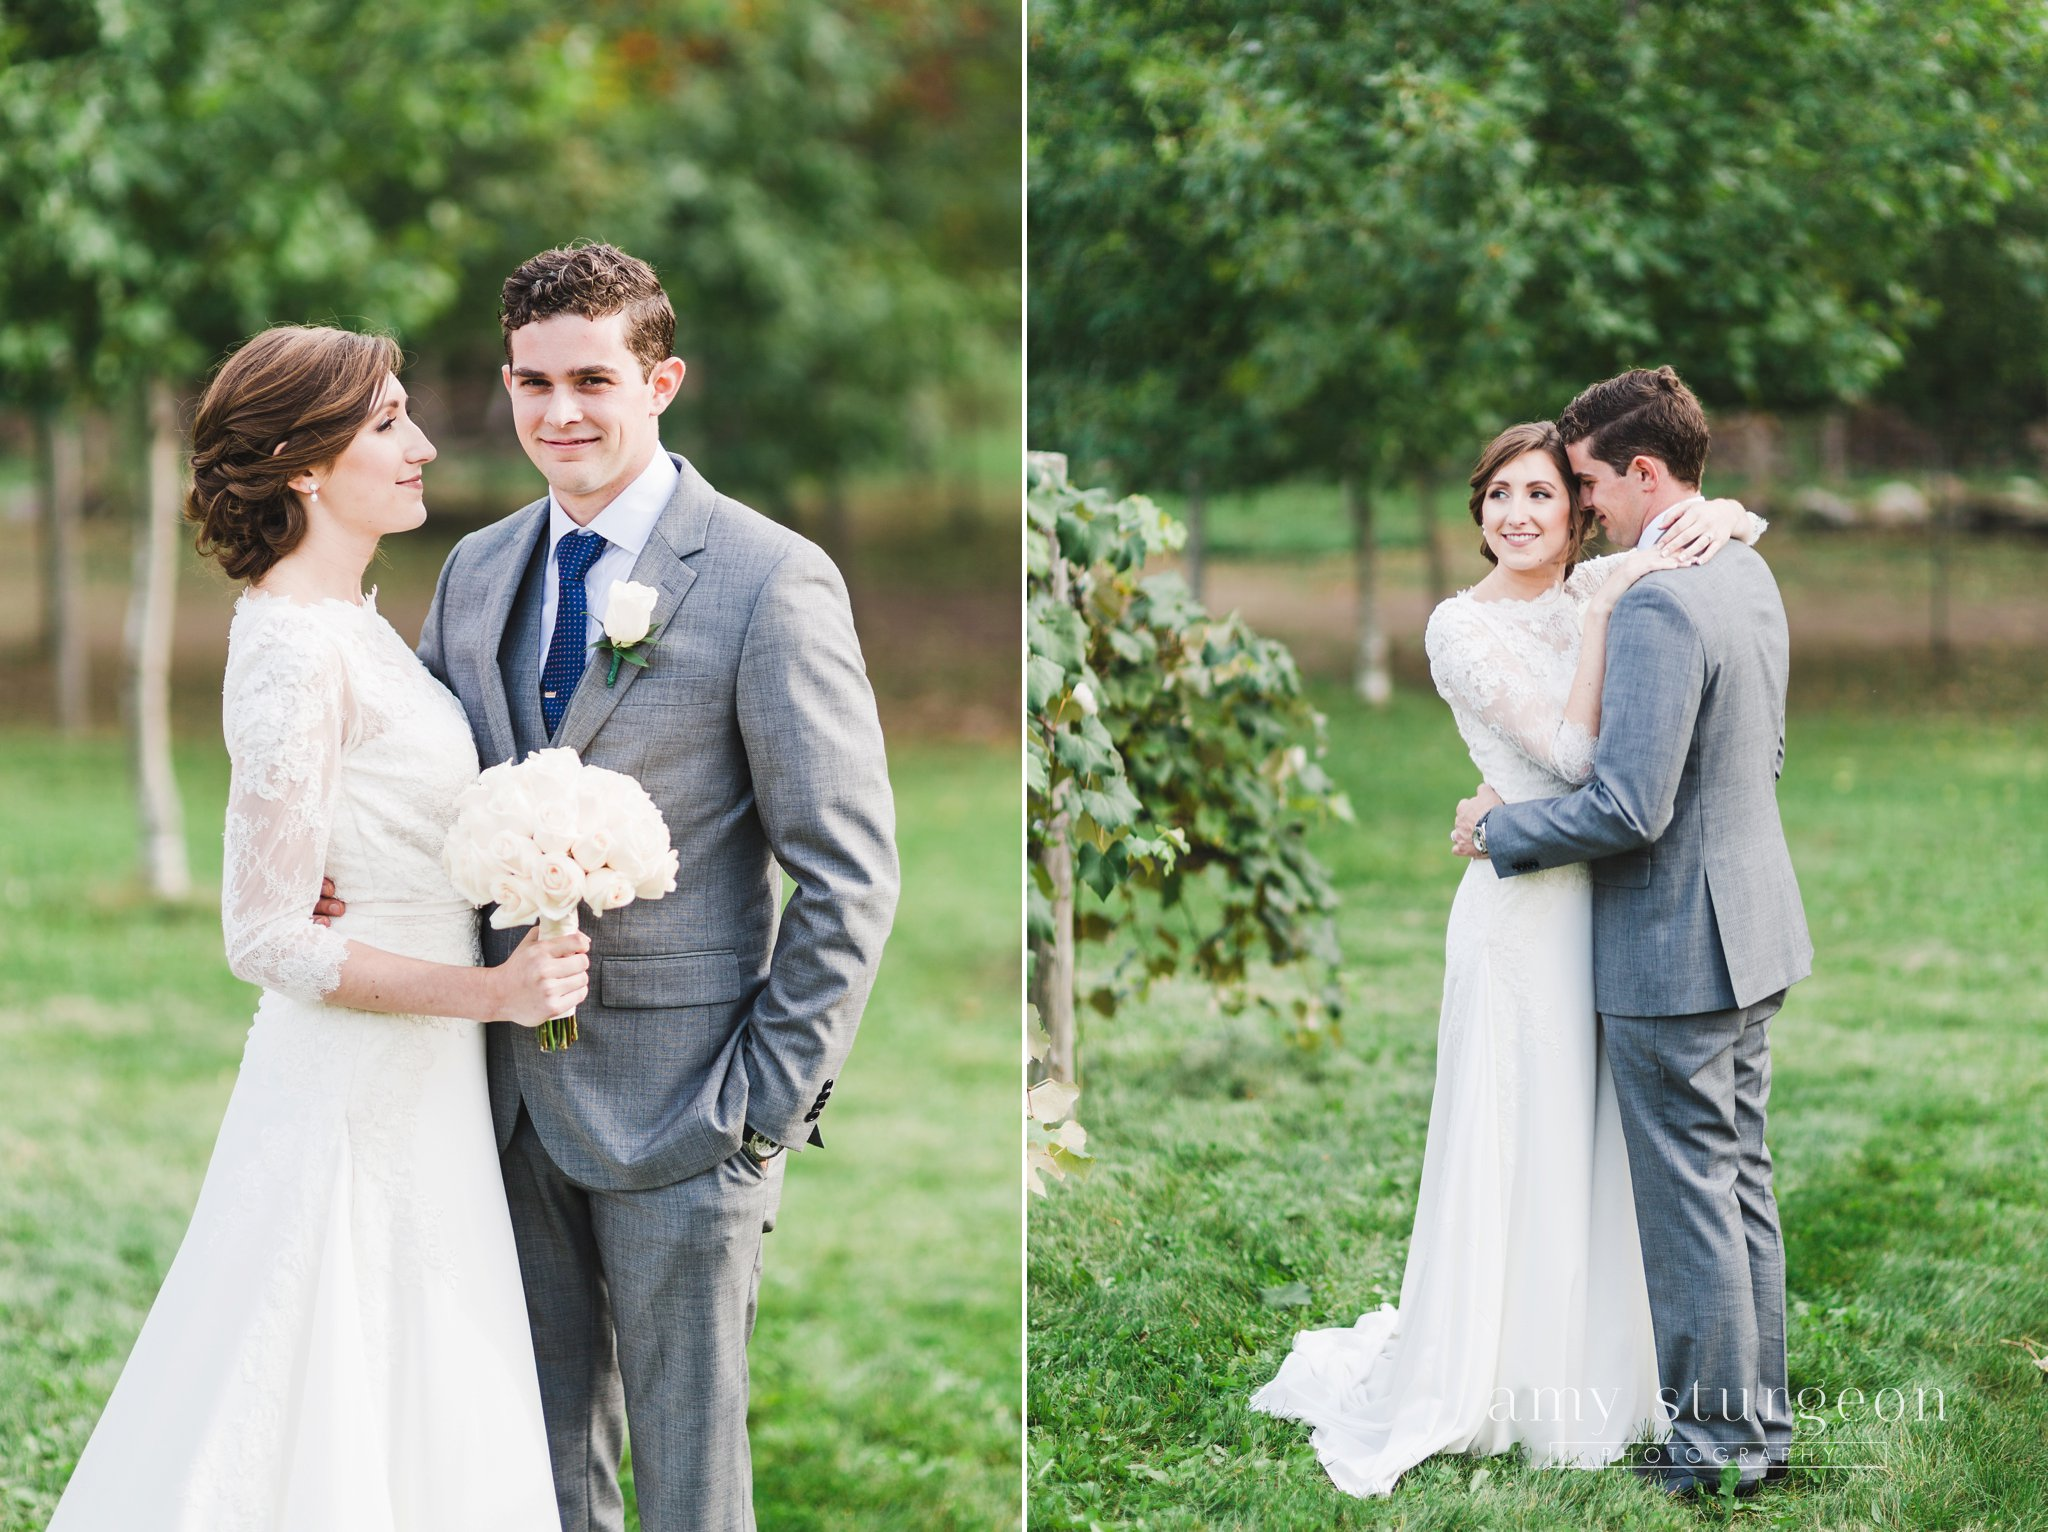 The groom wore a grey suit with a blue tie at the alpaca farm wedding